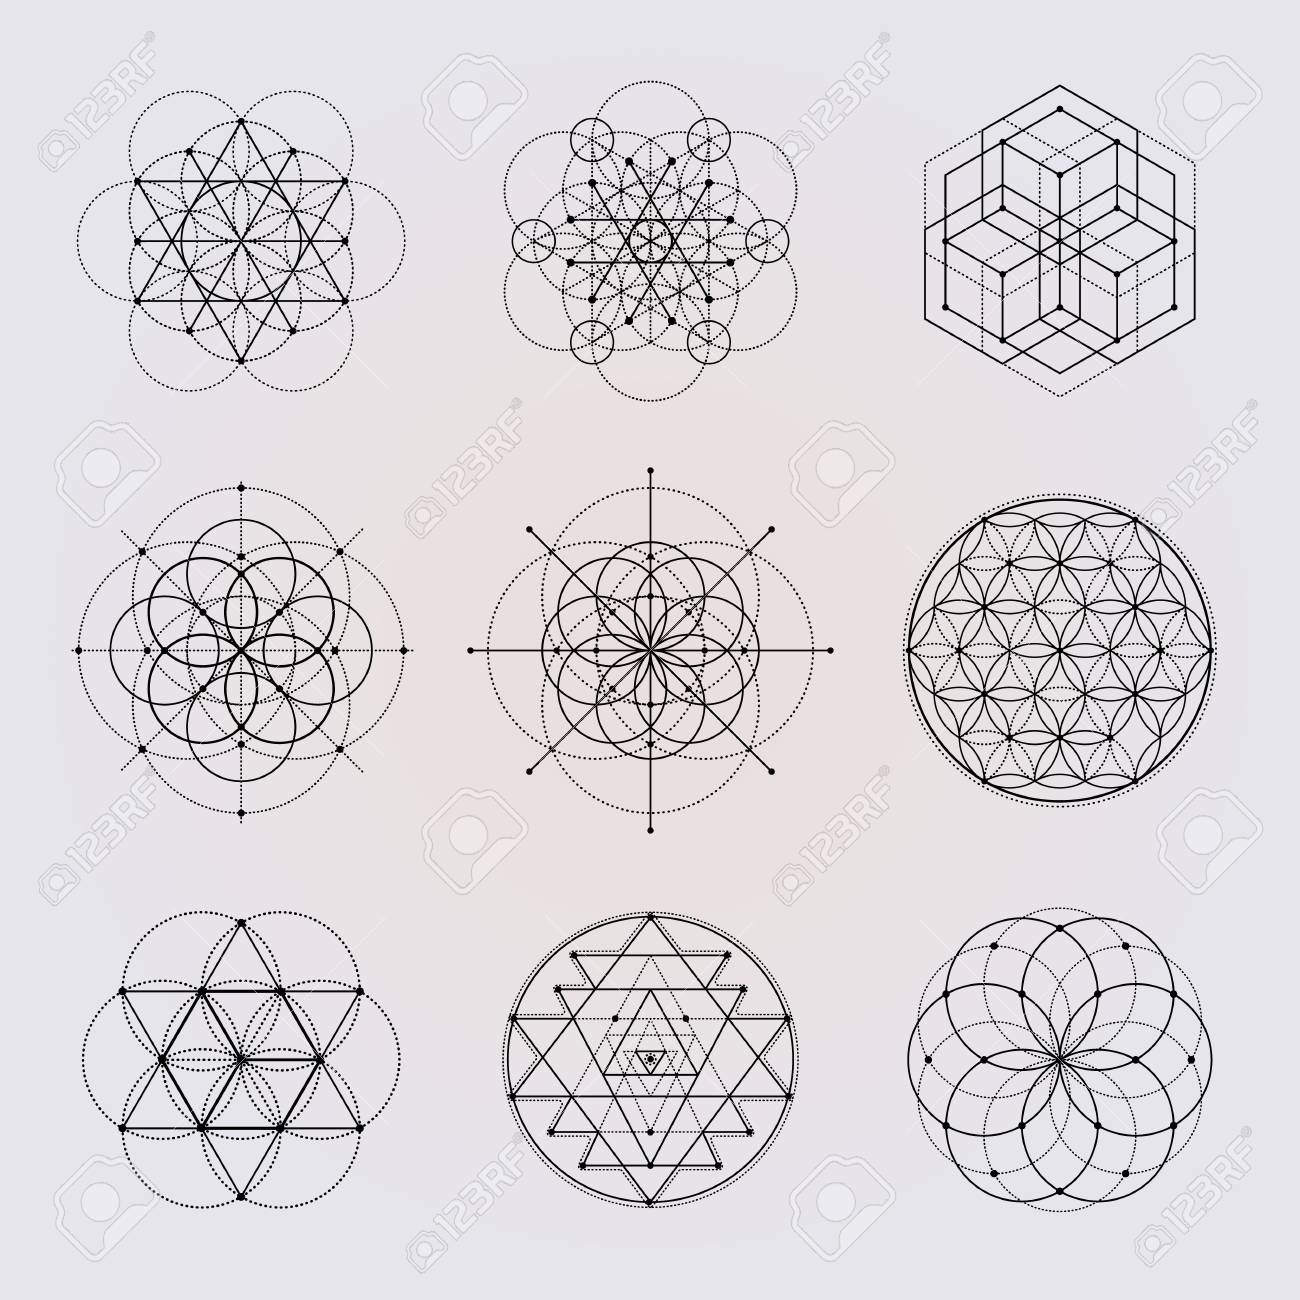 sacred geometry vector design elements royalty free cliparts